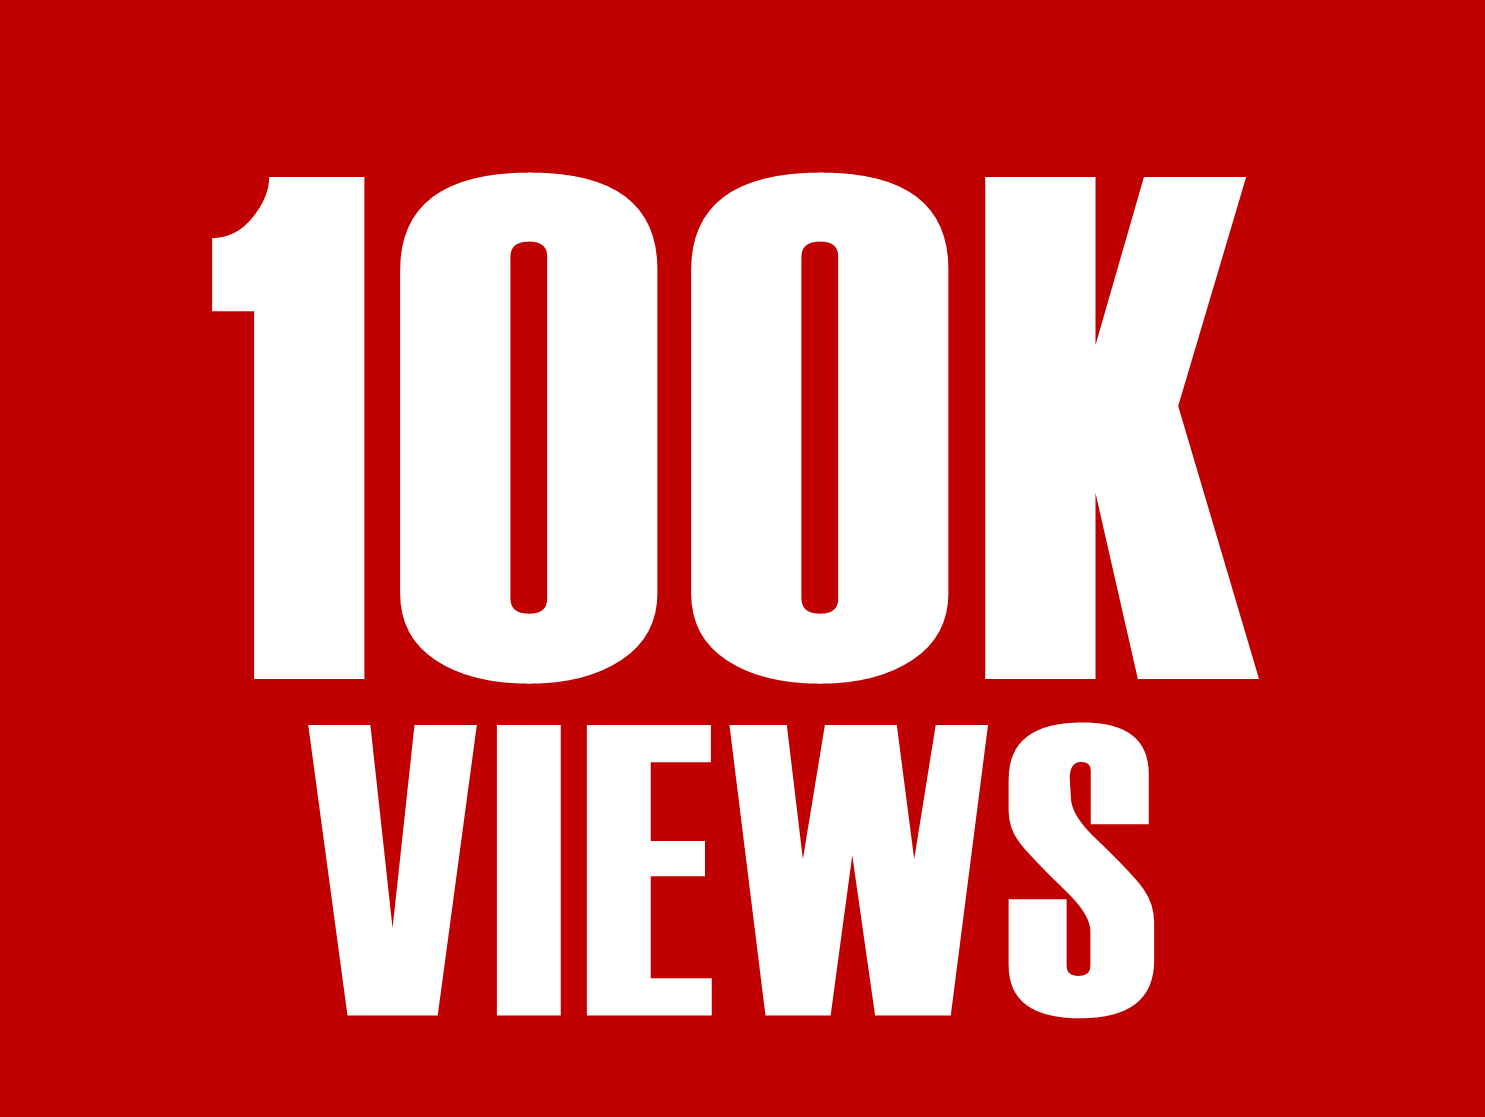 100000+ Good Retention YouTube Video Express Delivery - Bonus